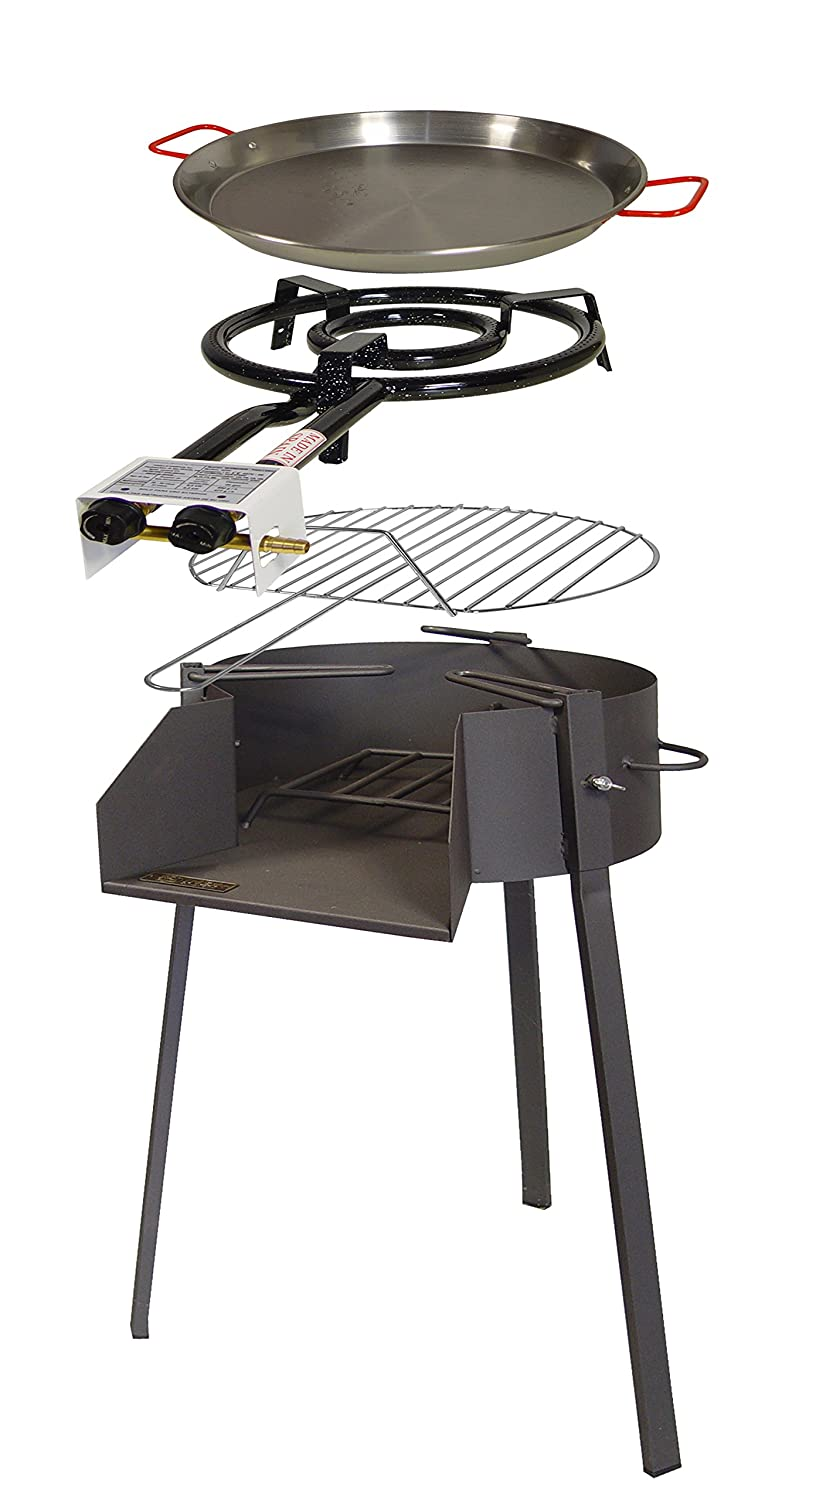 Imex The Fox 71586 Kit – Barbecue Round, 50 x 61 x 75 cm, Black Imex El Zorro